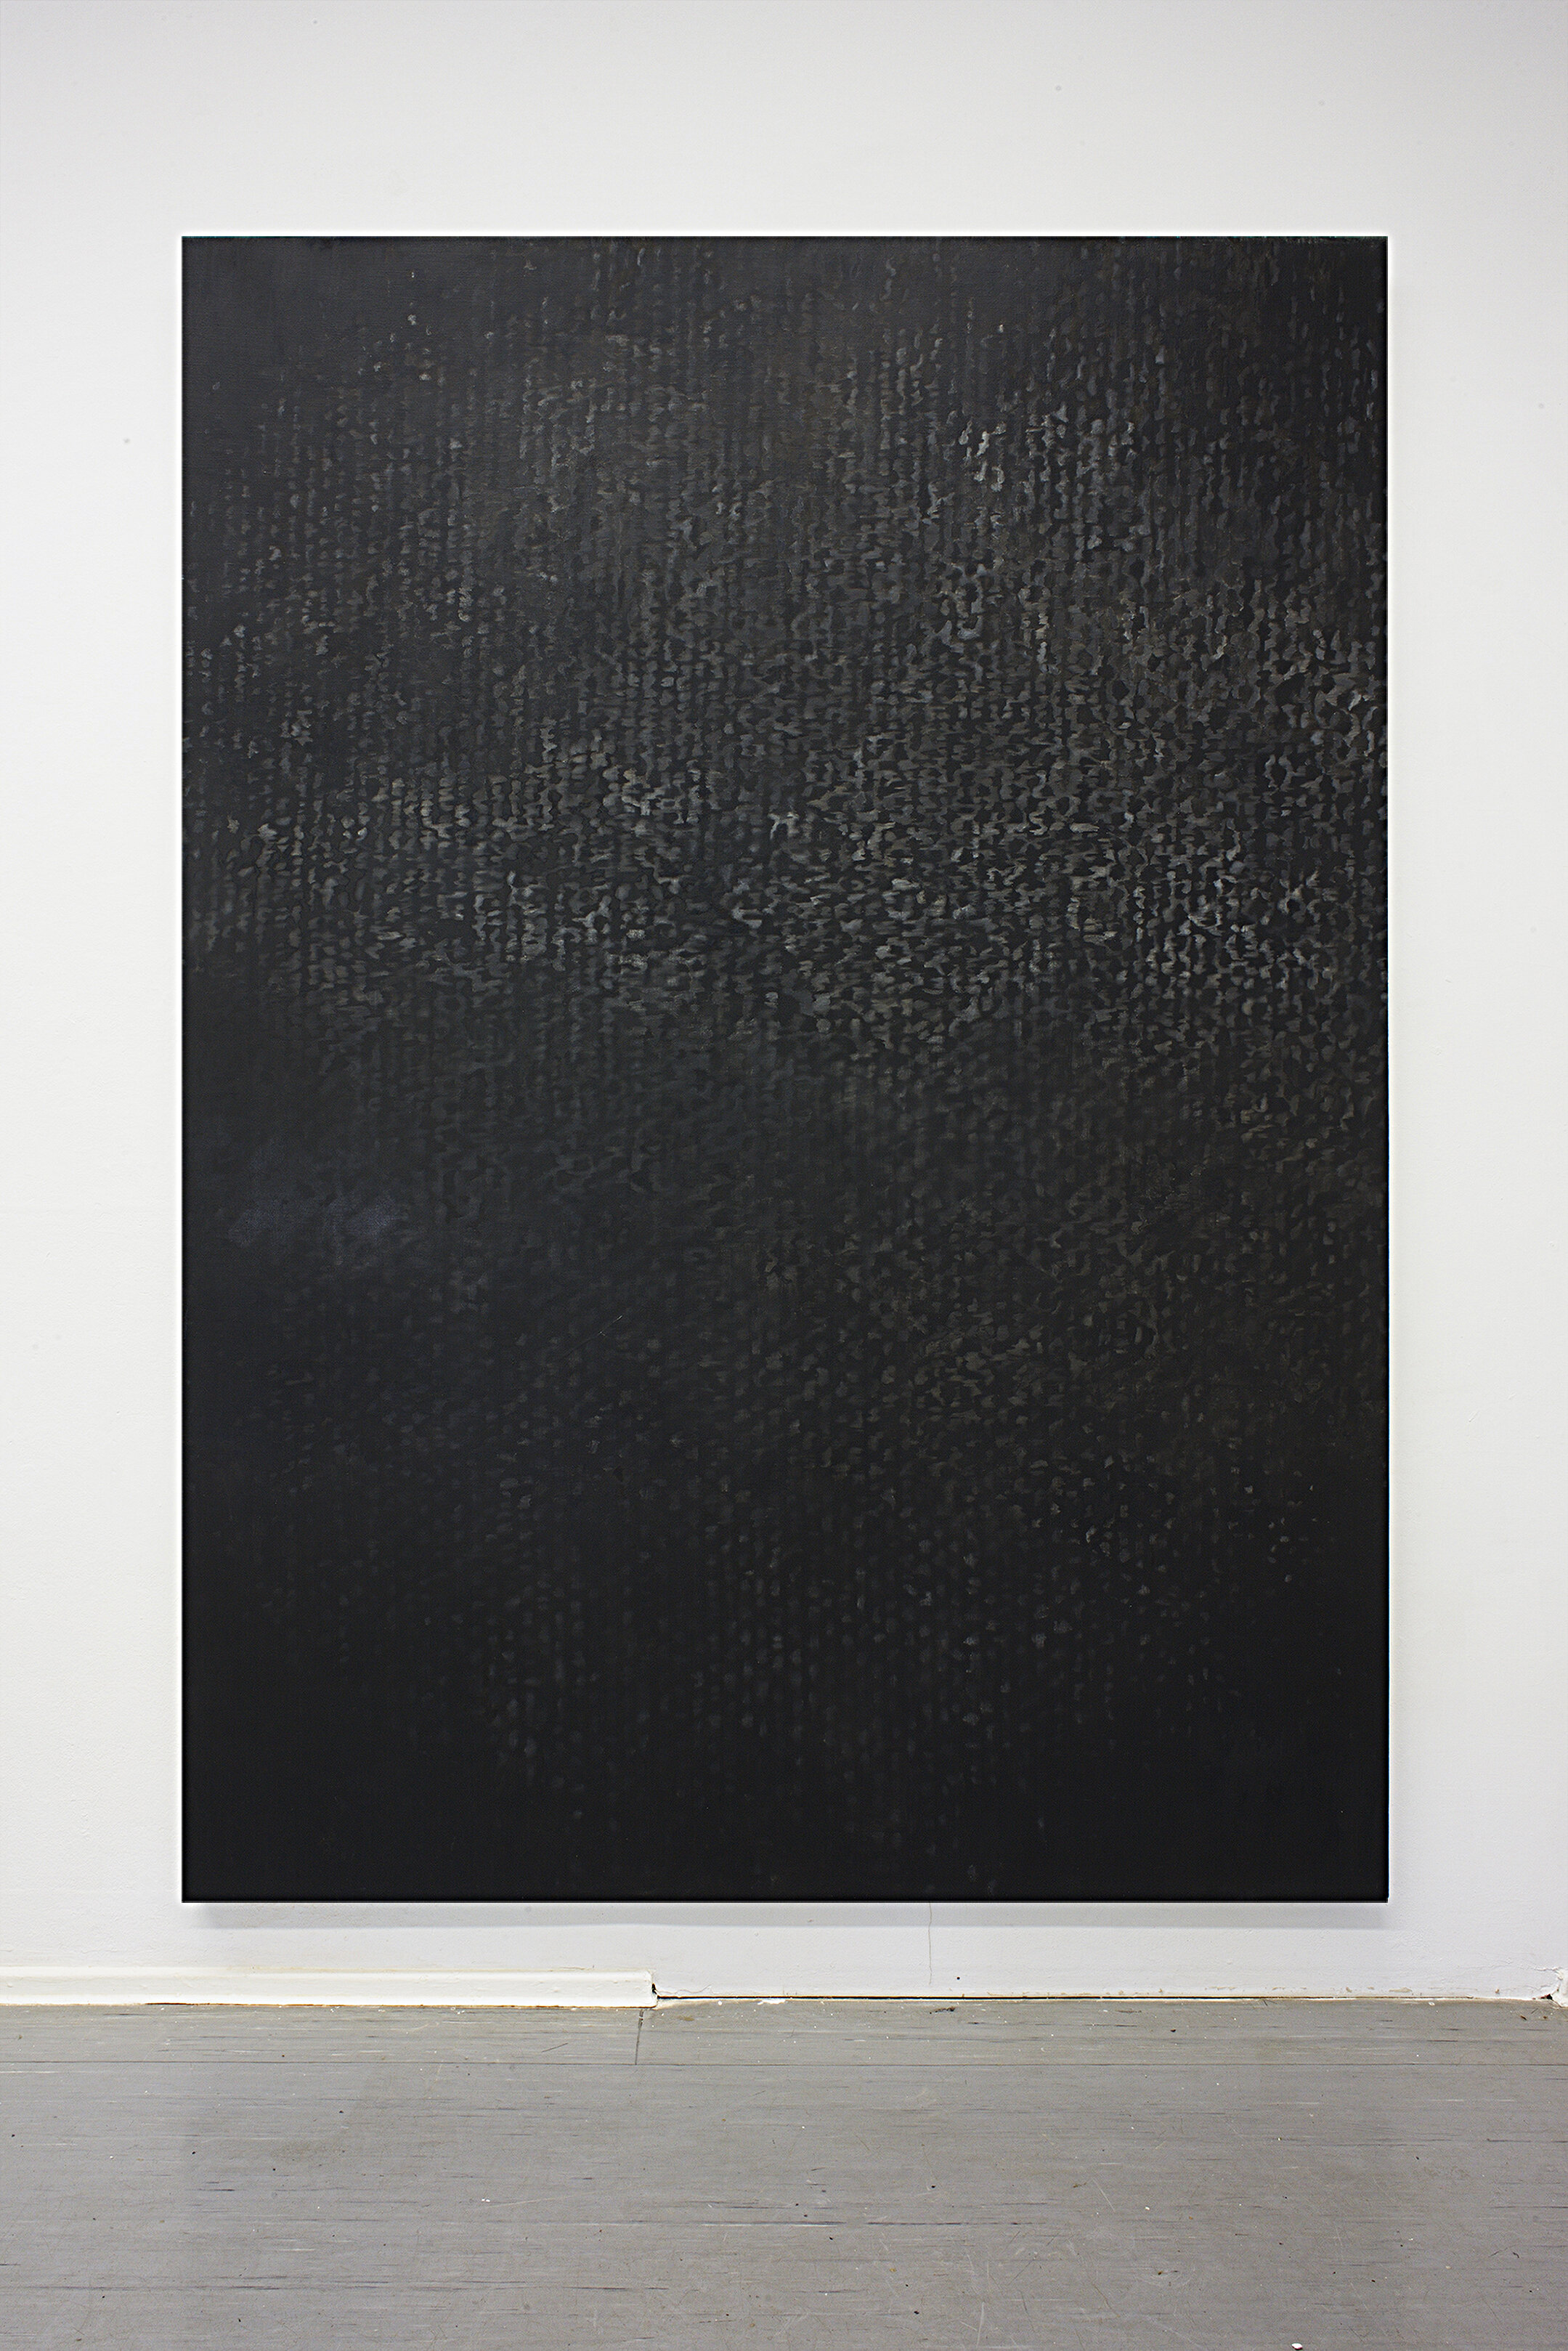 Canvas 01 , oil & pigment on canvas, 128 x 92.5 inches, 2010